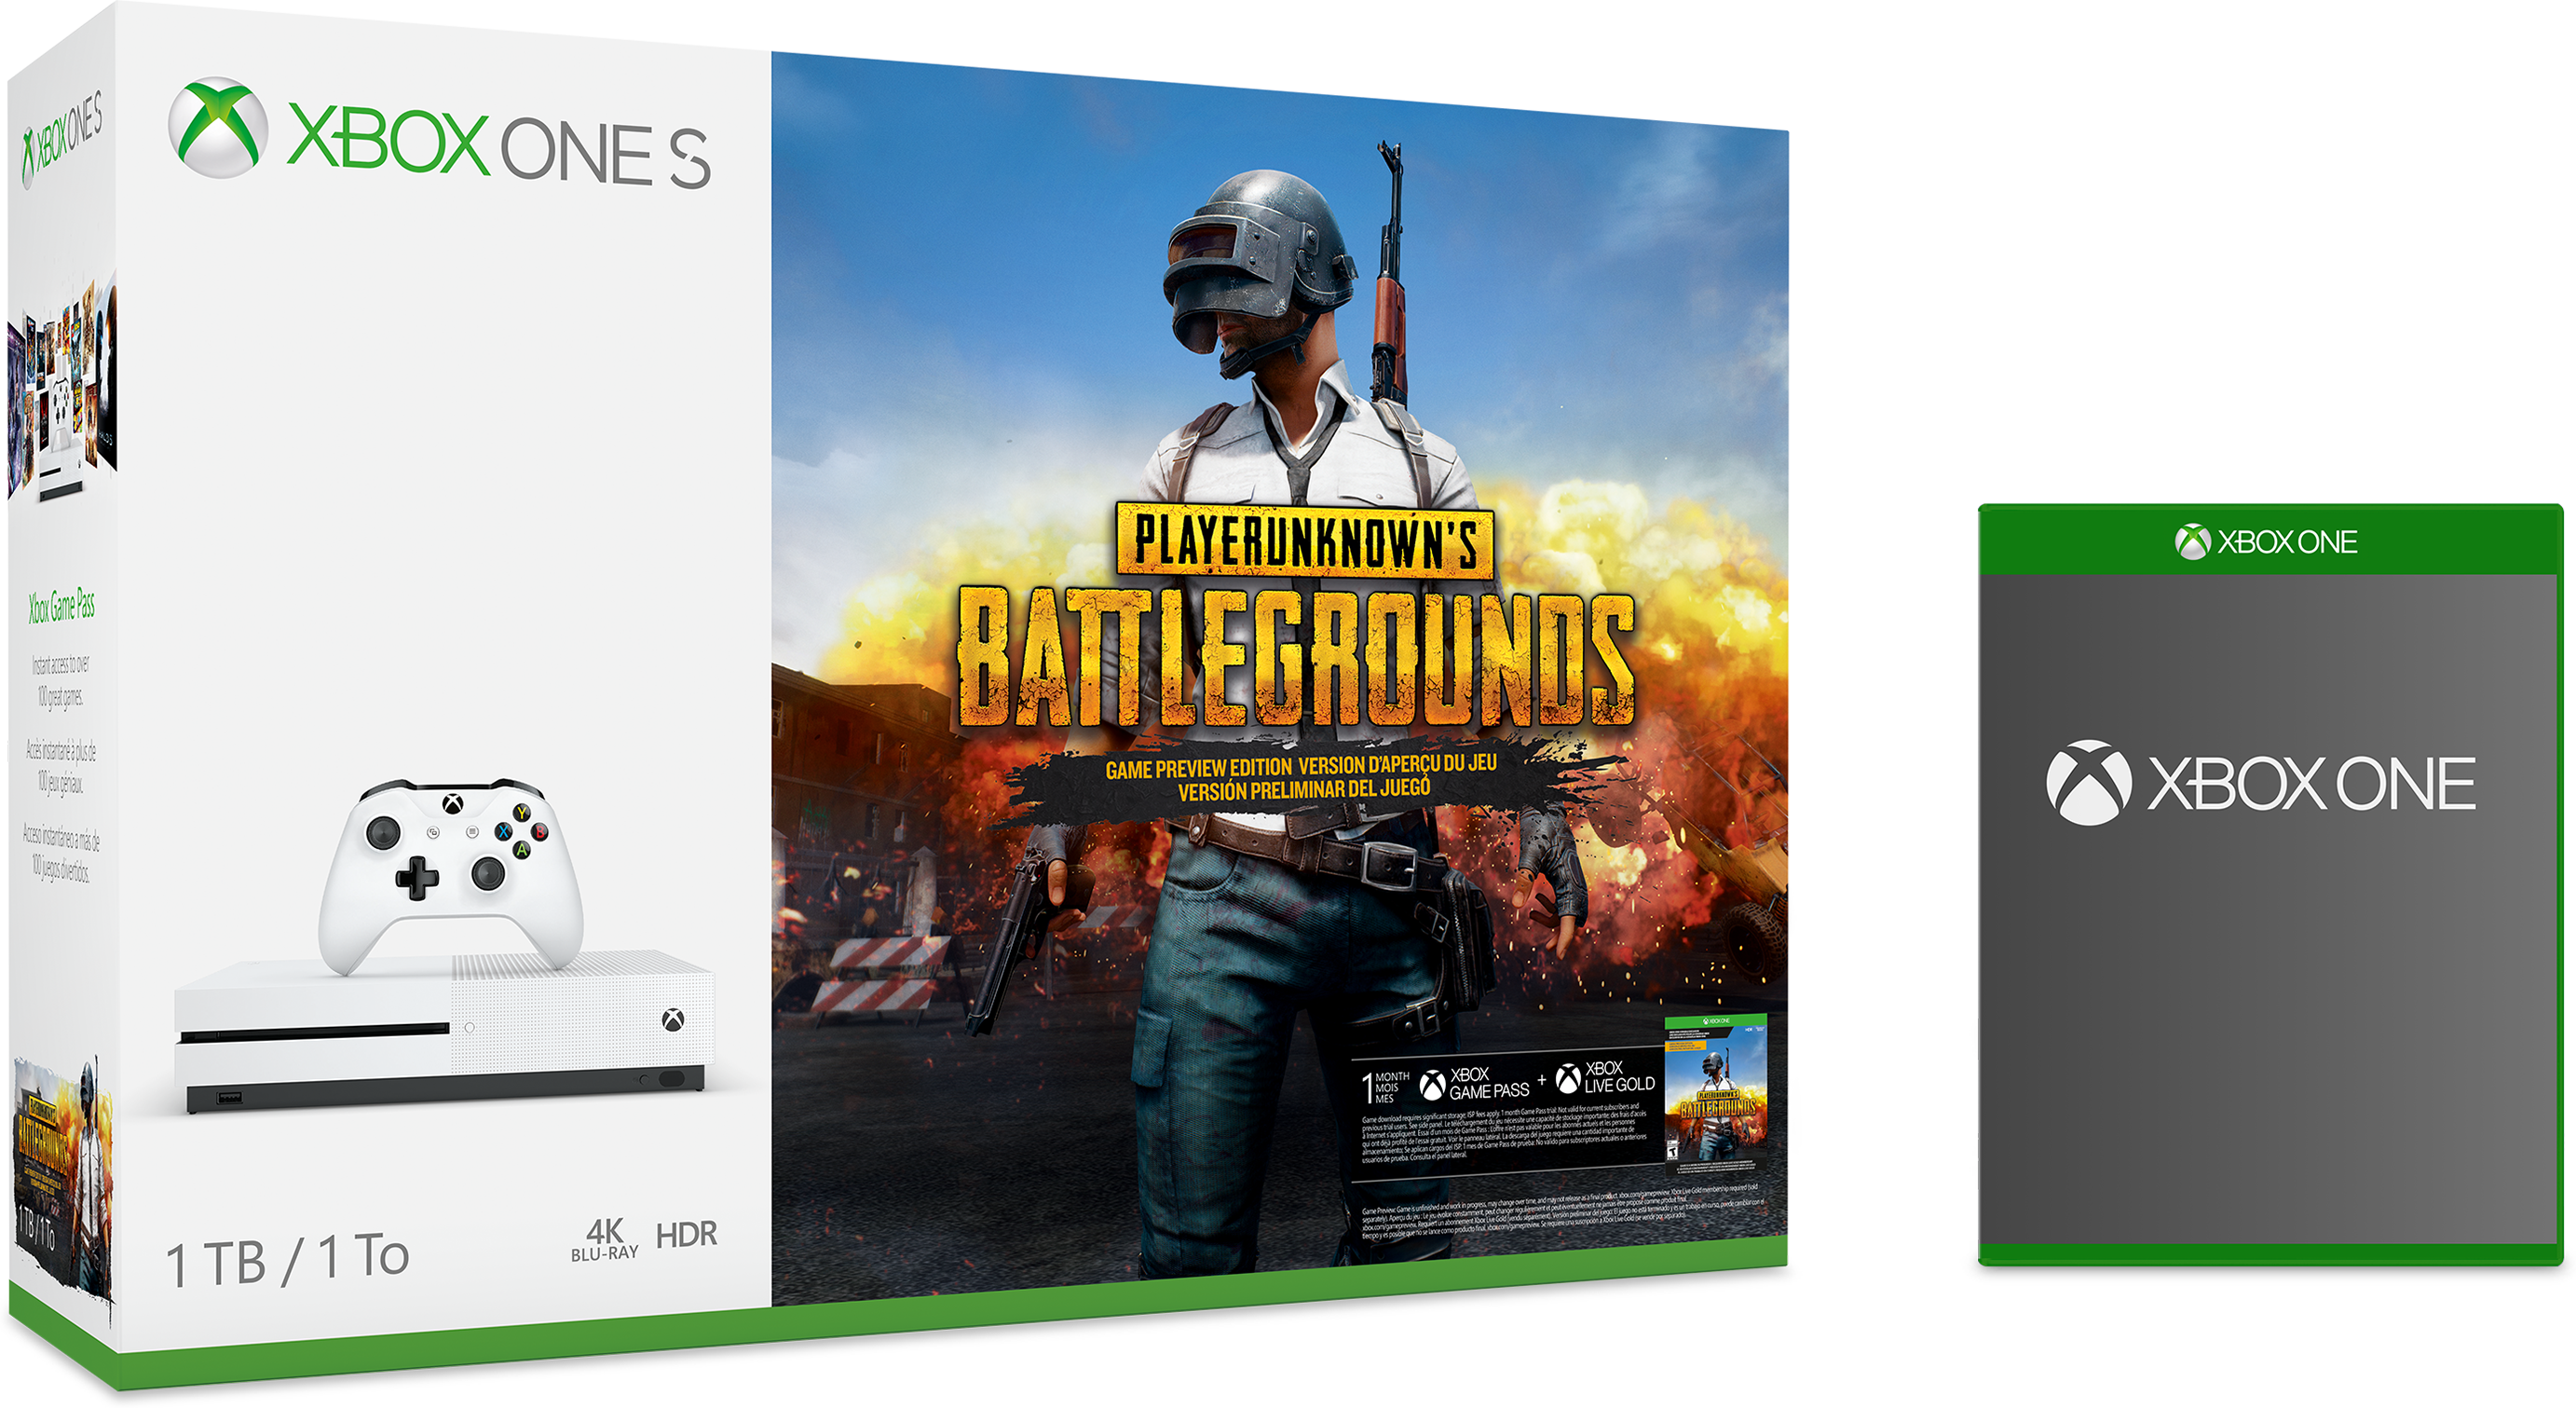 Xbox One S PLAYERUNKNOWN'S BATTLEGROUNDS bundle with free game